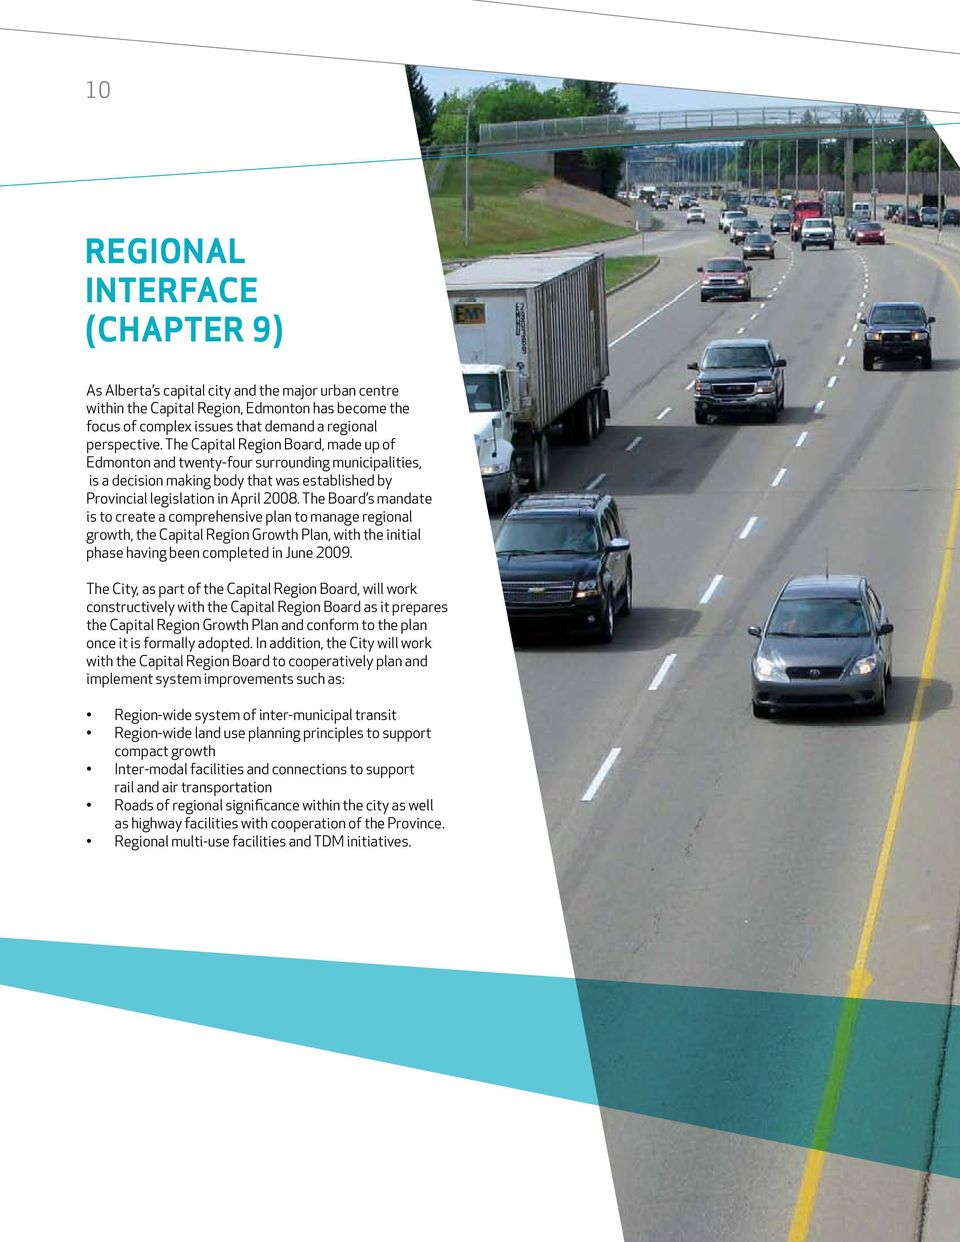 The Board s mandate is to create a comprehensive plan to manage regional growth, the Capital Region Growth Plan, with the initial phase having been completed in June 2009.